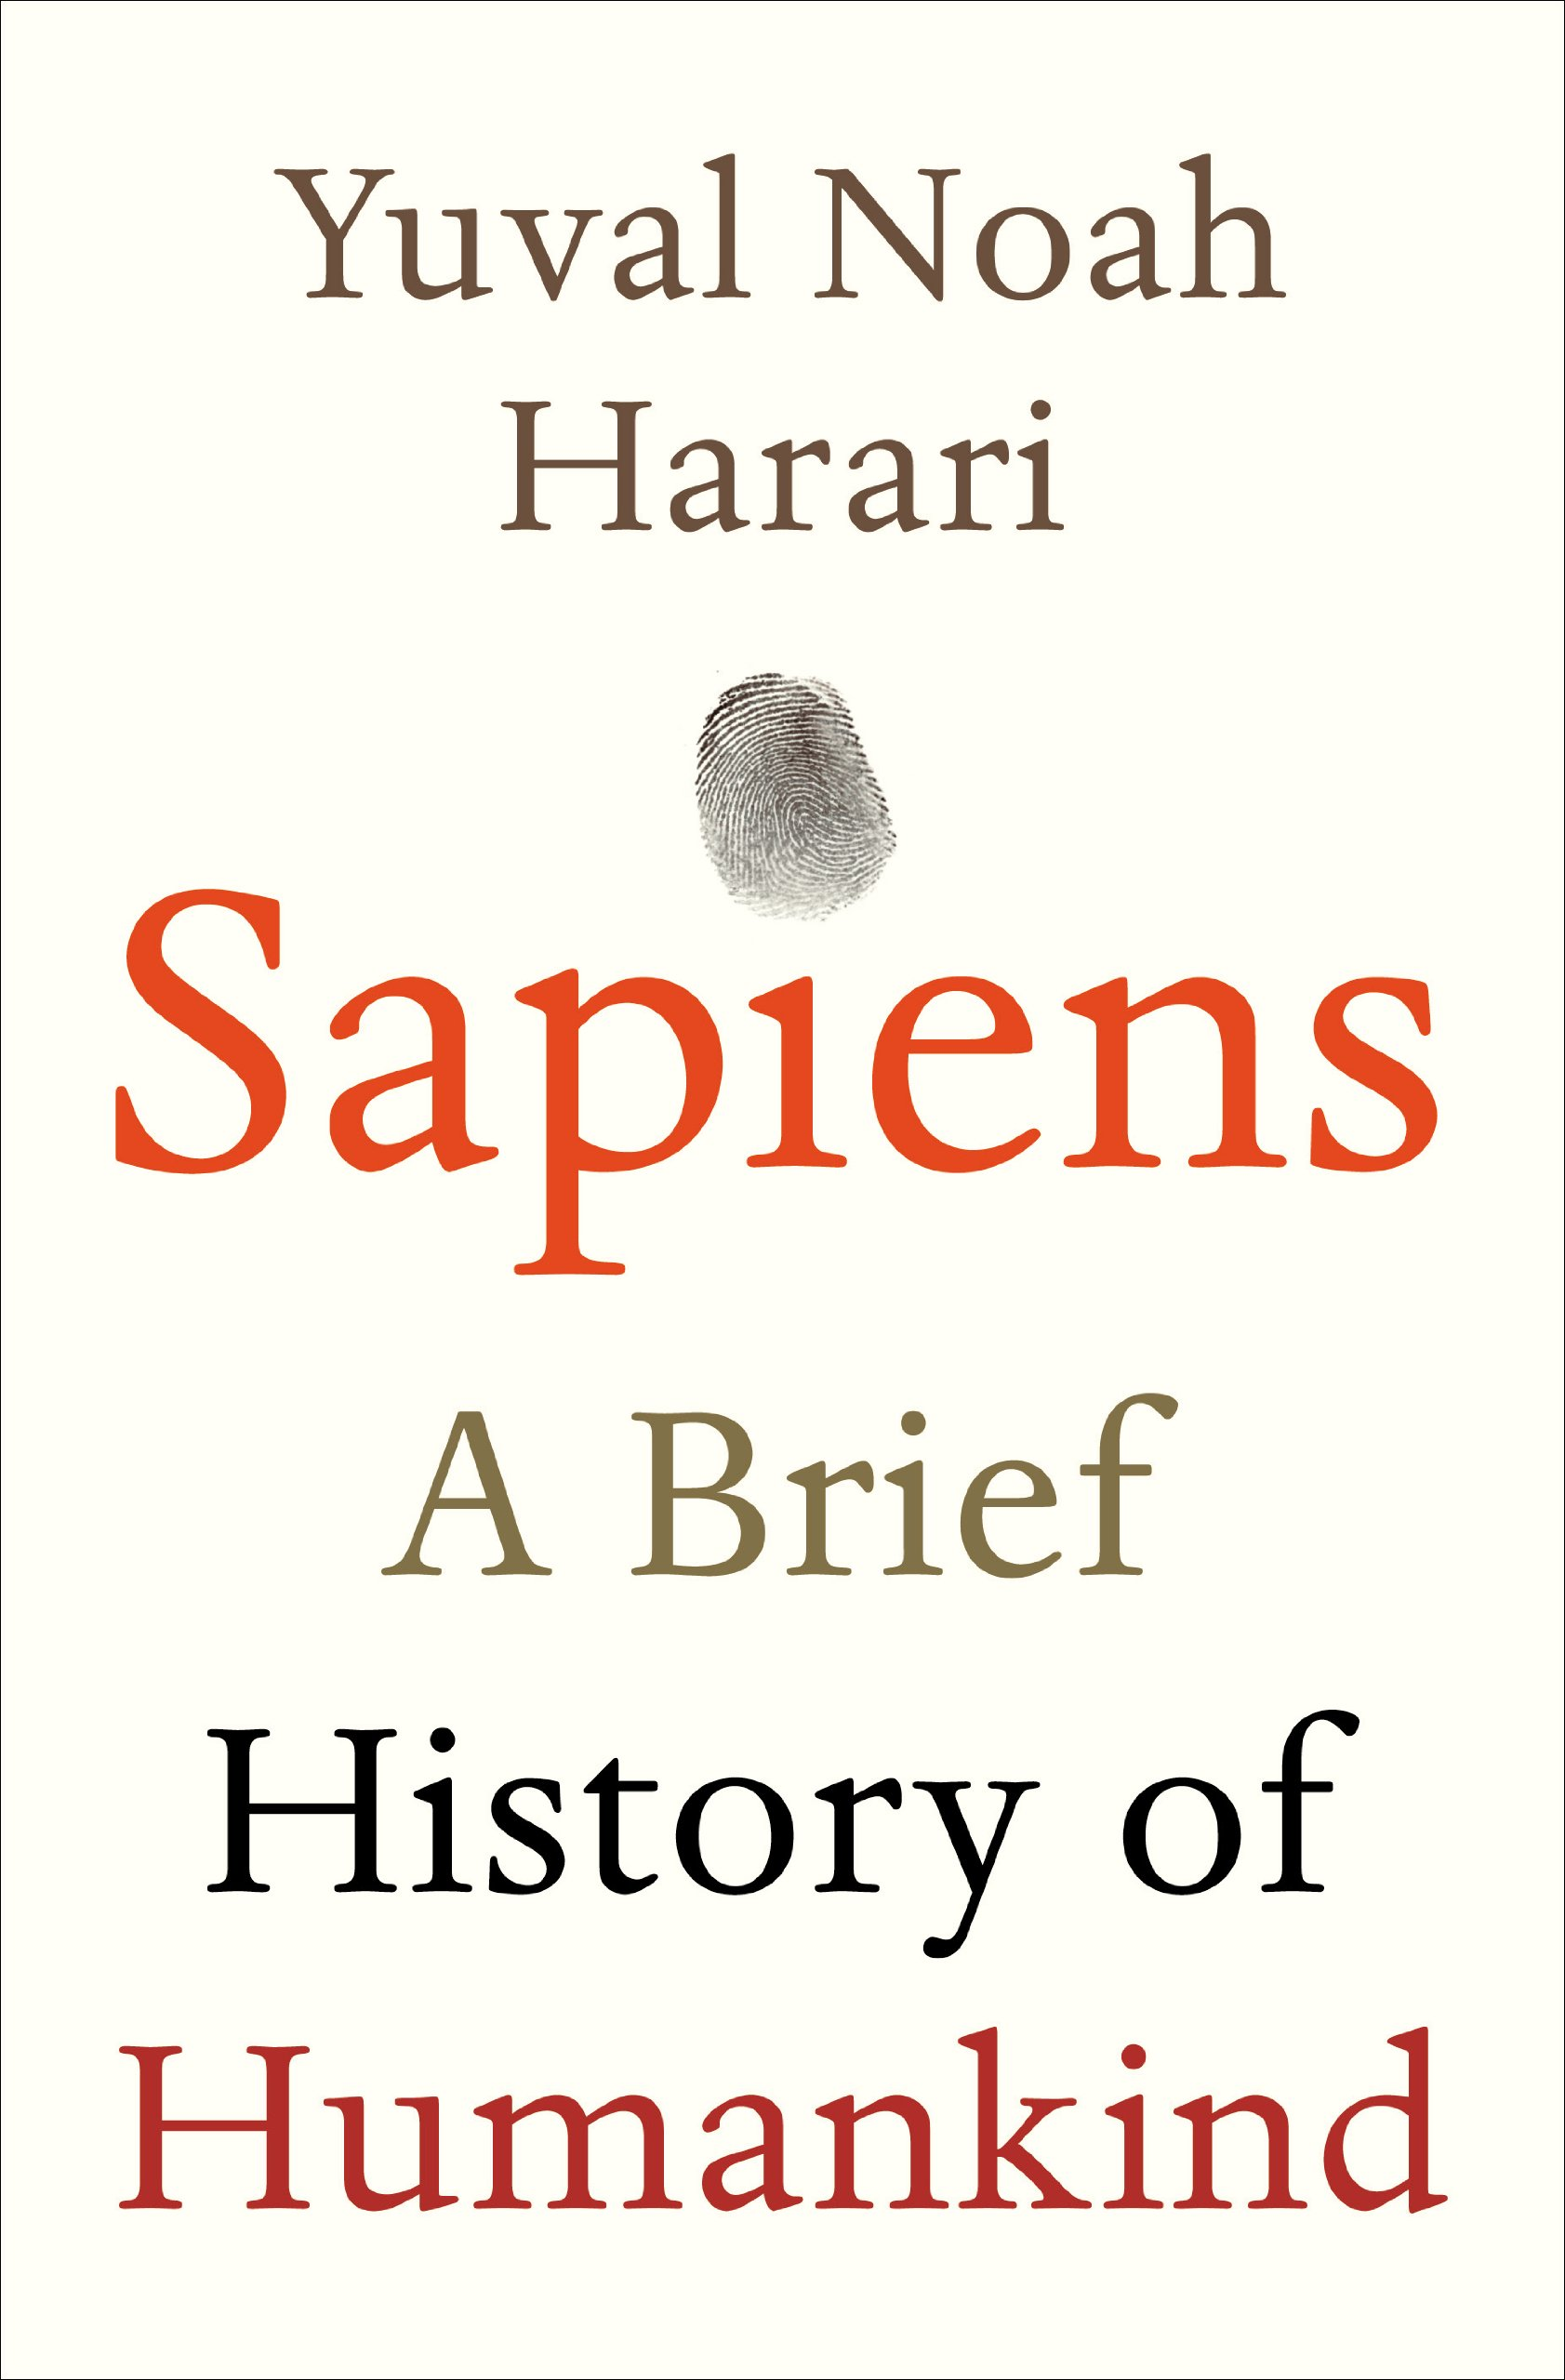 Sapiens (book cover)